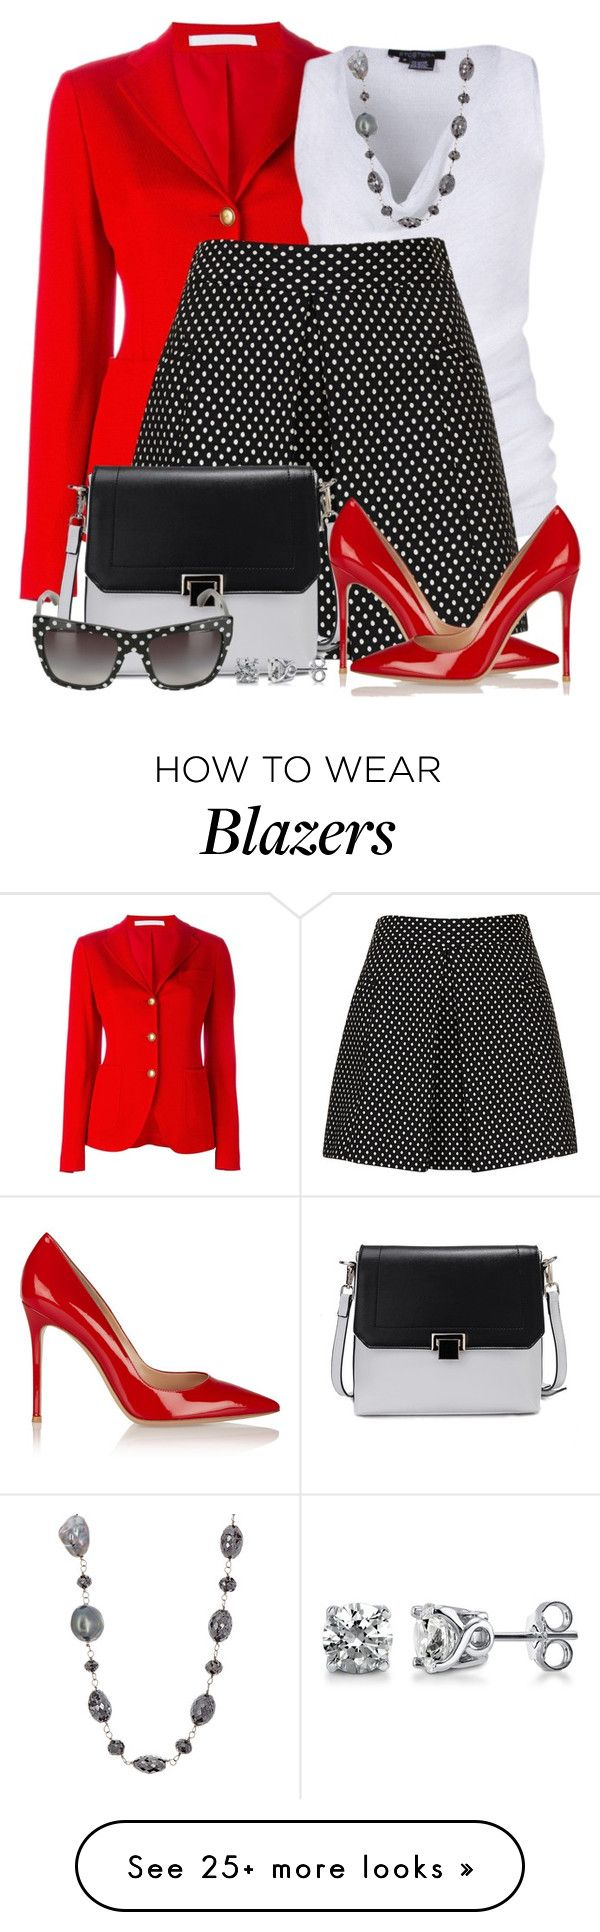 """Fitted Blazer & A-Line Skirt"" by brendariley-1 on Polyvore featuring Tagliatore, Etcetera, Topshop, Gianvito Rossi, Monique Péan, Dolce&Gabbana, BERRICLE, skirt, topshop and polkadot"